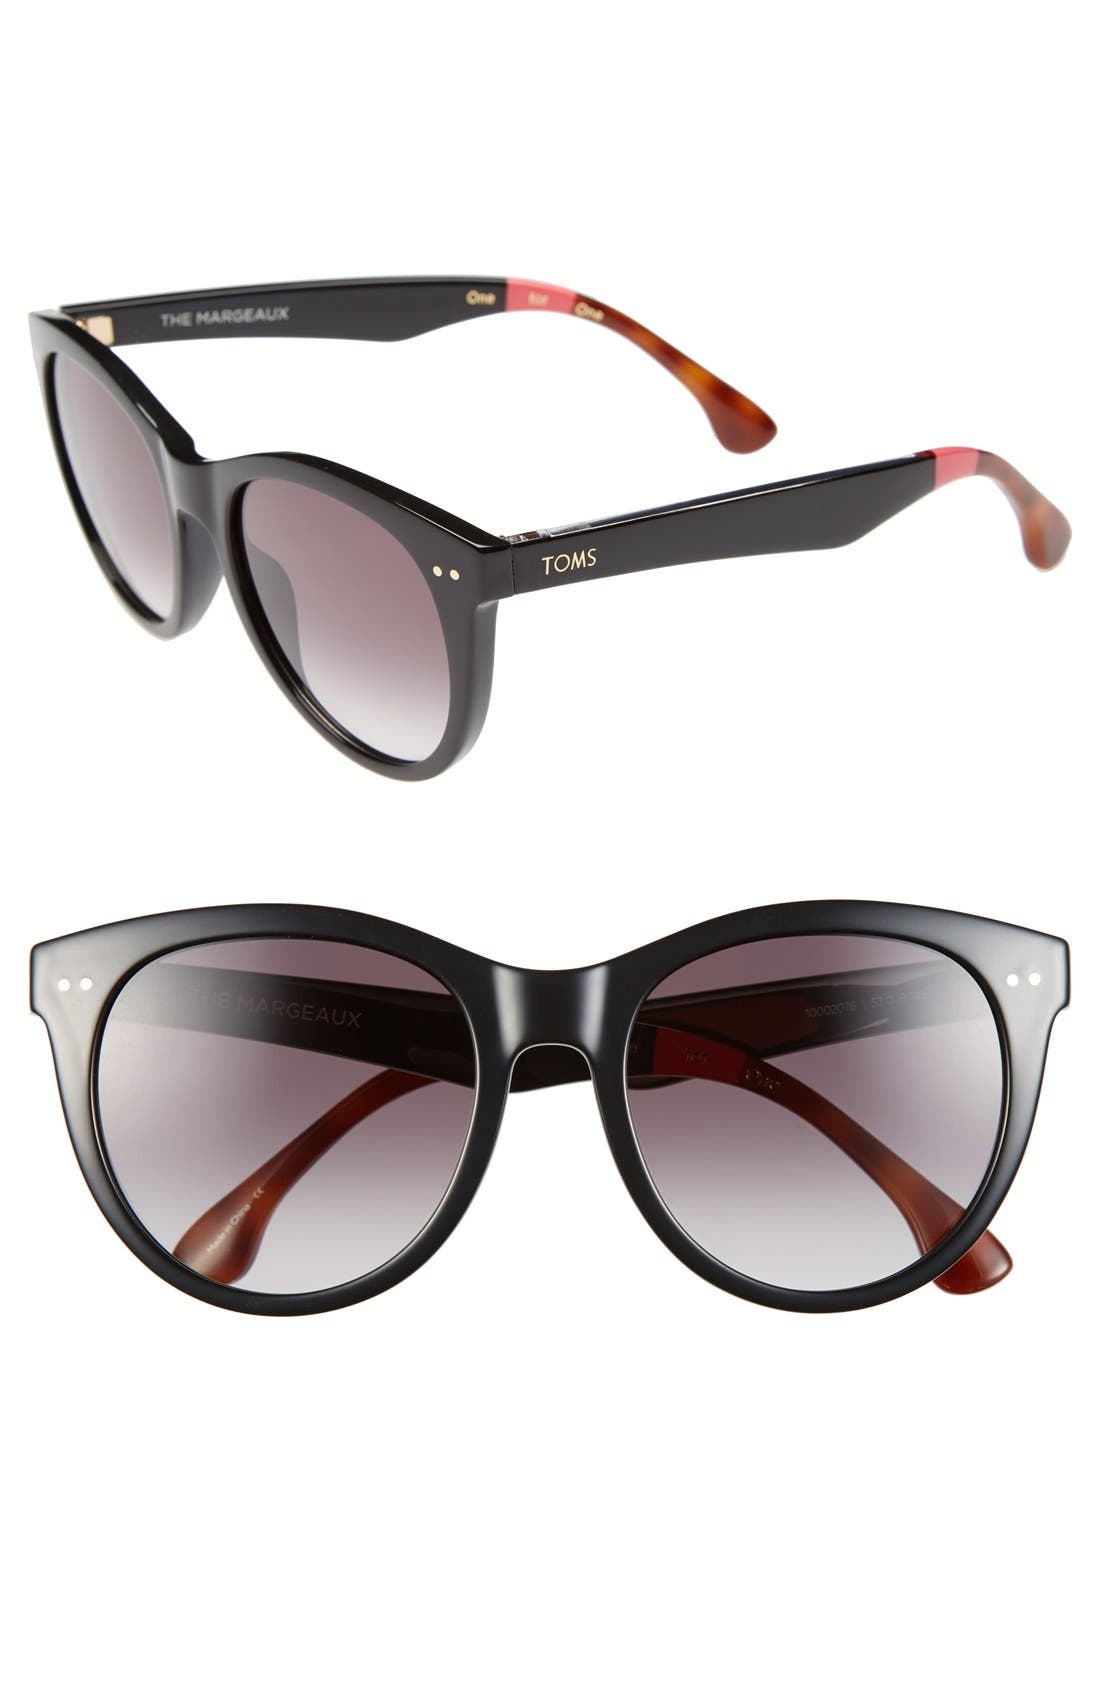 Main Image - TOMS 'Margeaux' 53mm Sunglasses